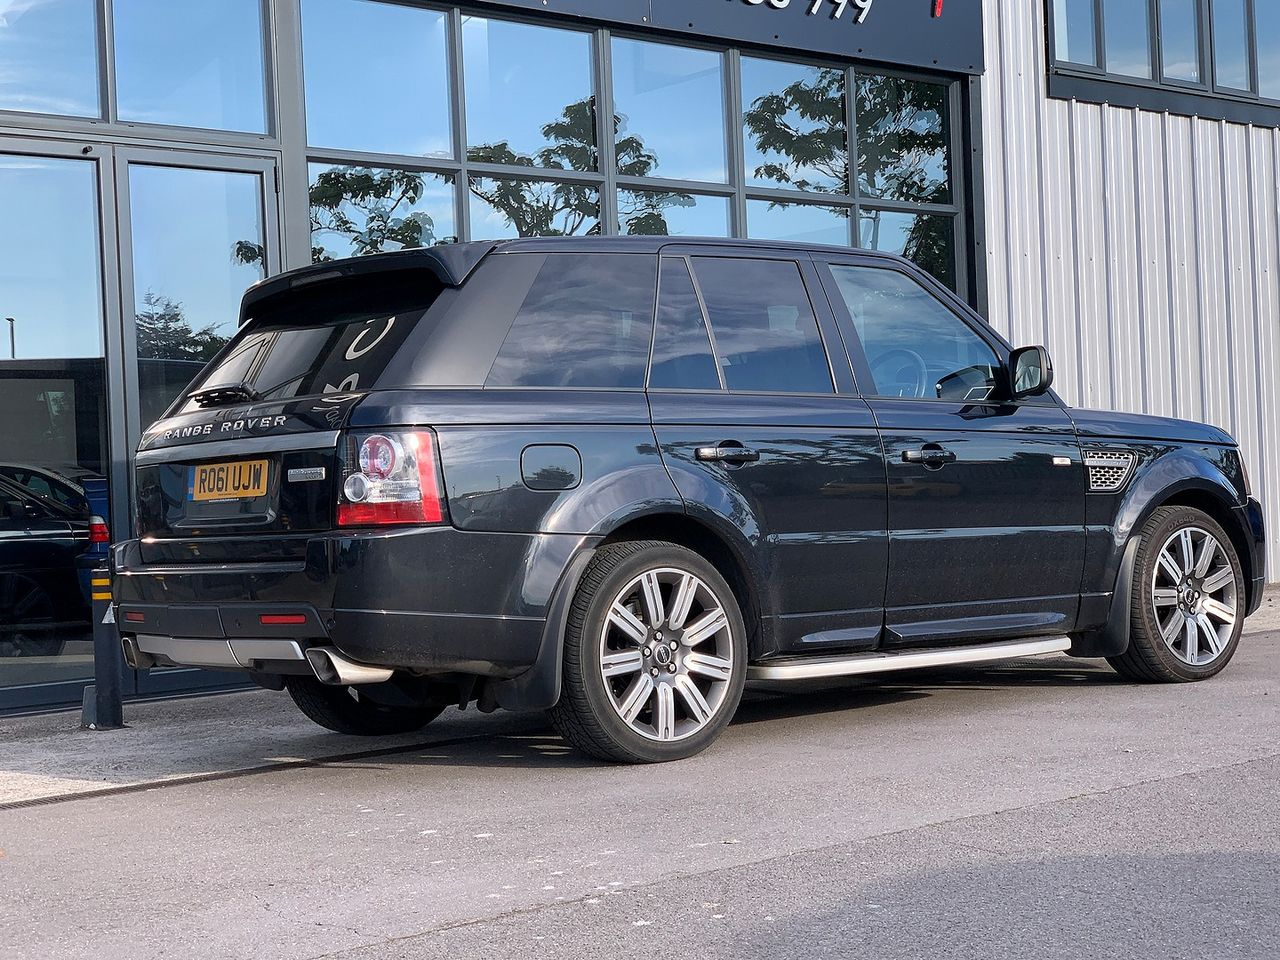 2011 LAND ROVER Range Rover Sport 3.0 SDV6 Autobiography Sport - Picture 2 of 7